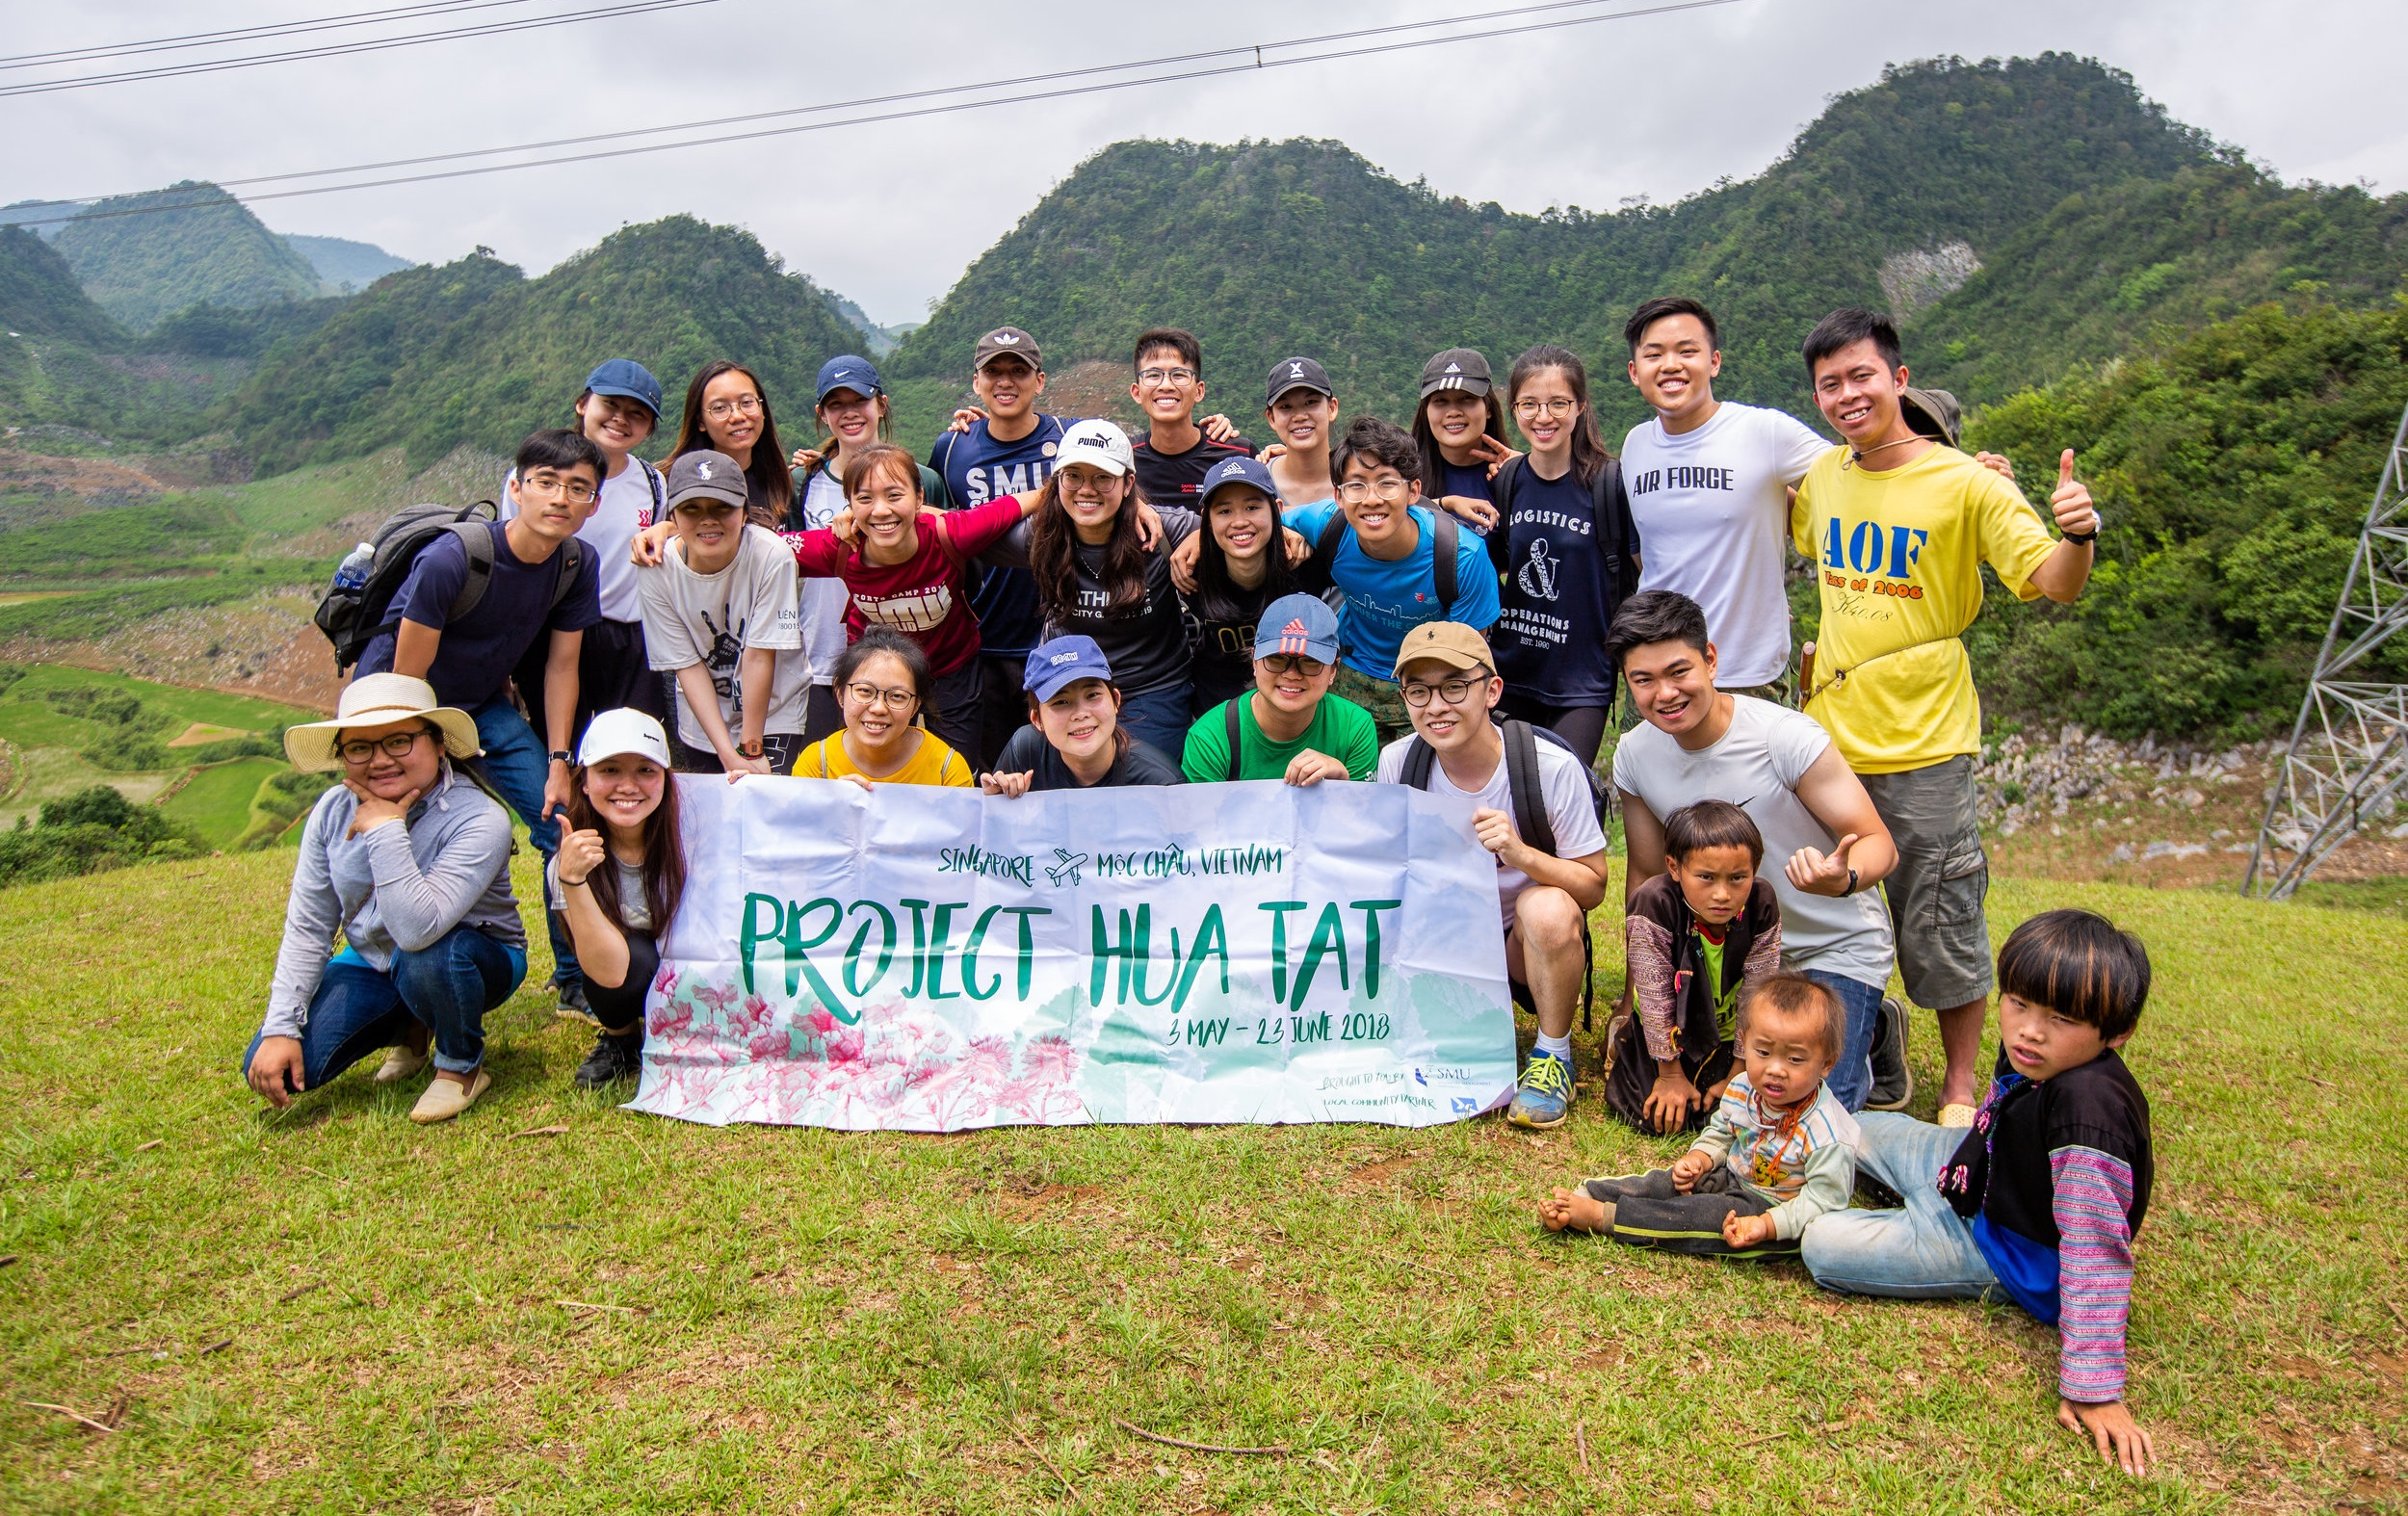 The Project Hua Tat team